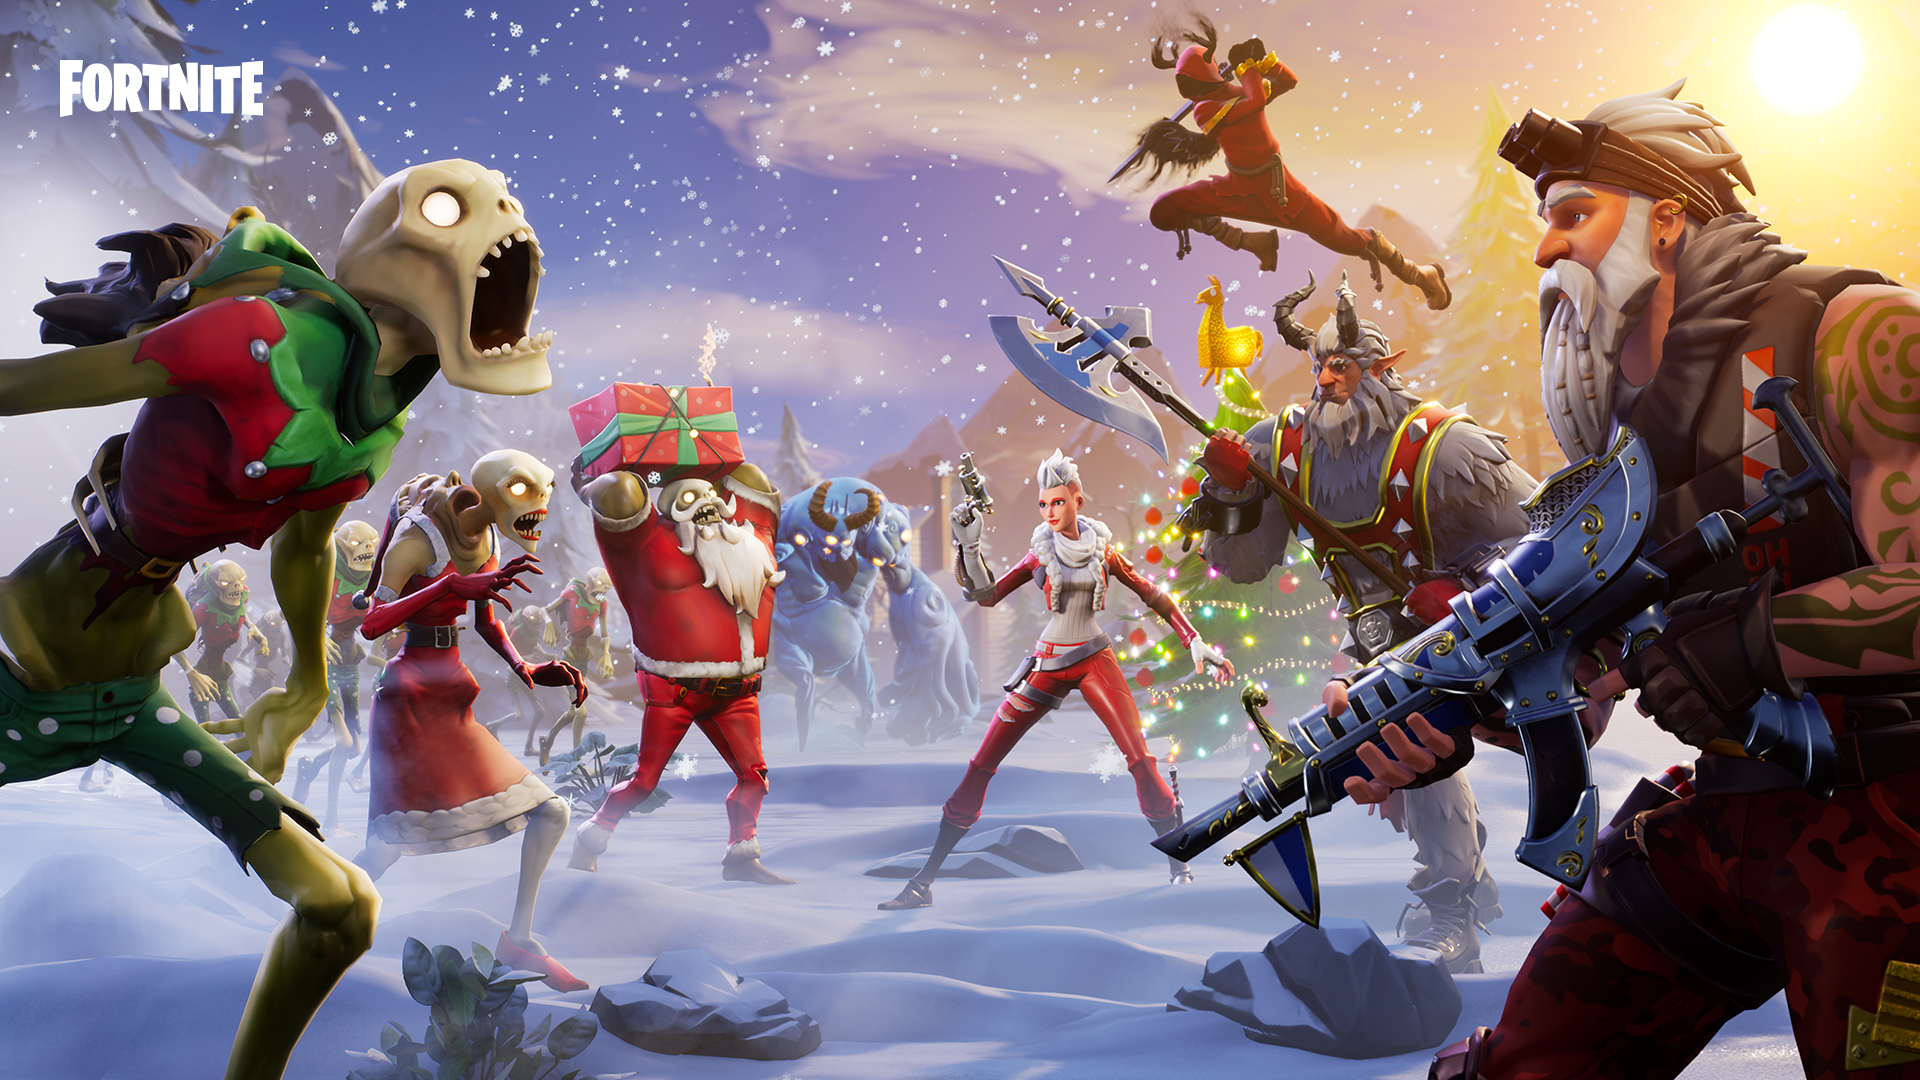 stw07 social frostnite faceoff jpg - wie lange sind die server von fortnite down